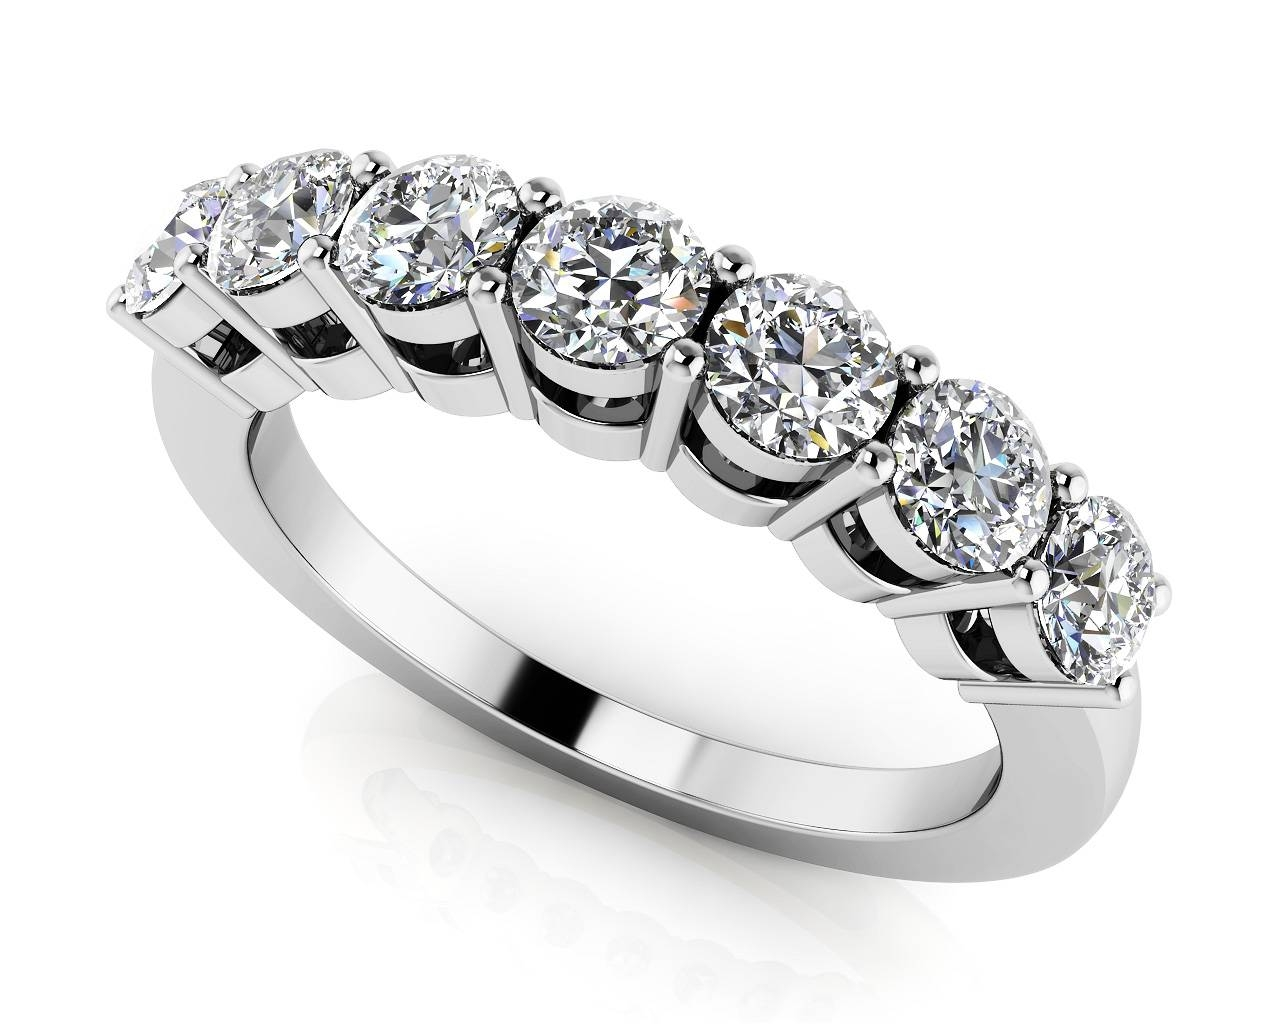 Design Your Own Diamond Anniversary Ring & Eternity Ring With Regard To 2017 5 Diamond Anniversary Rings (Gallery 23 of 25)